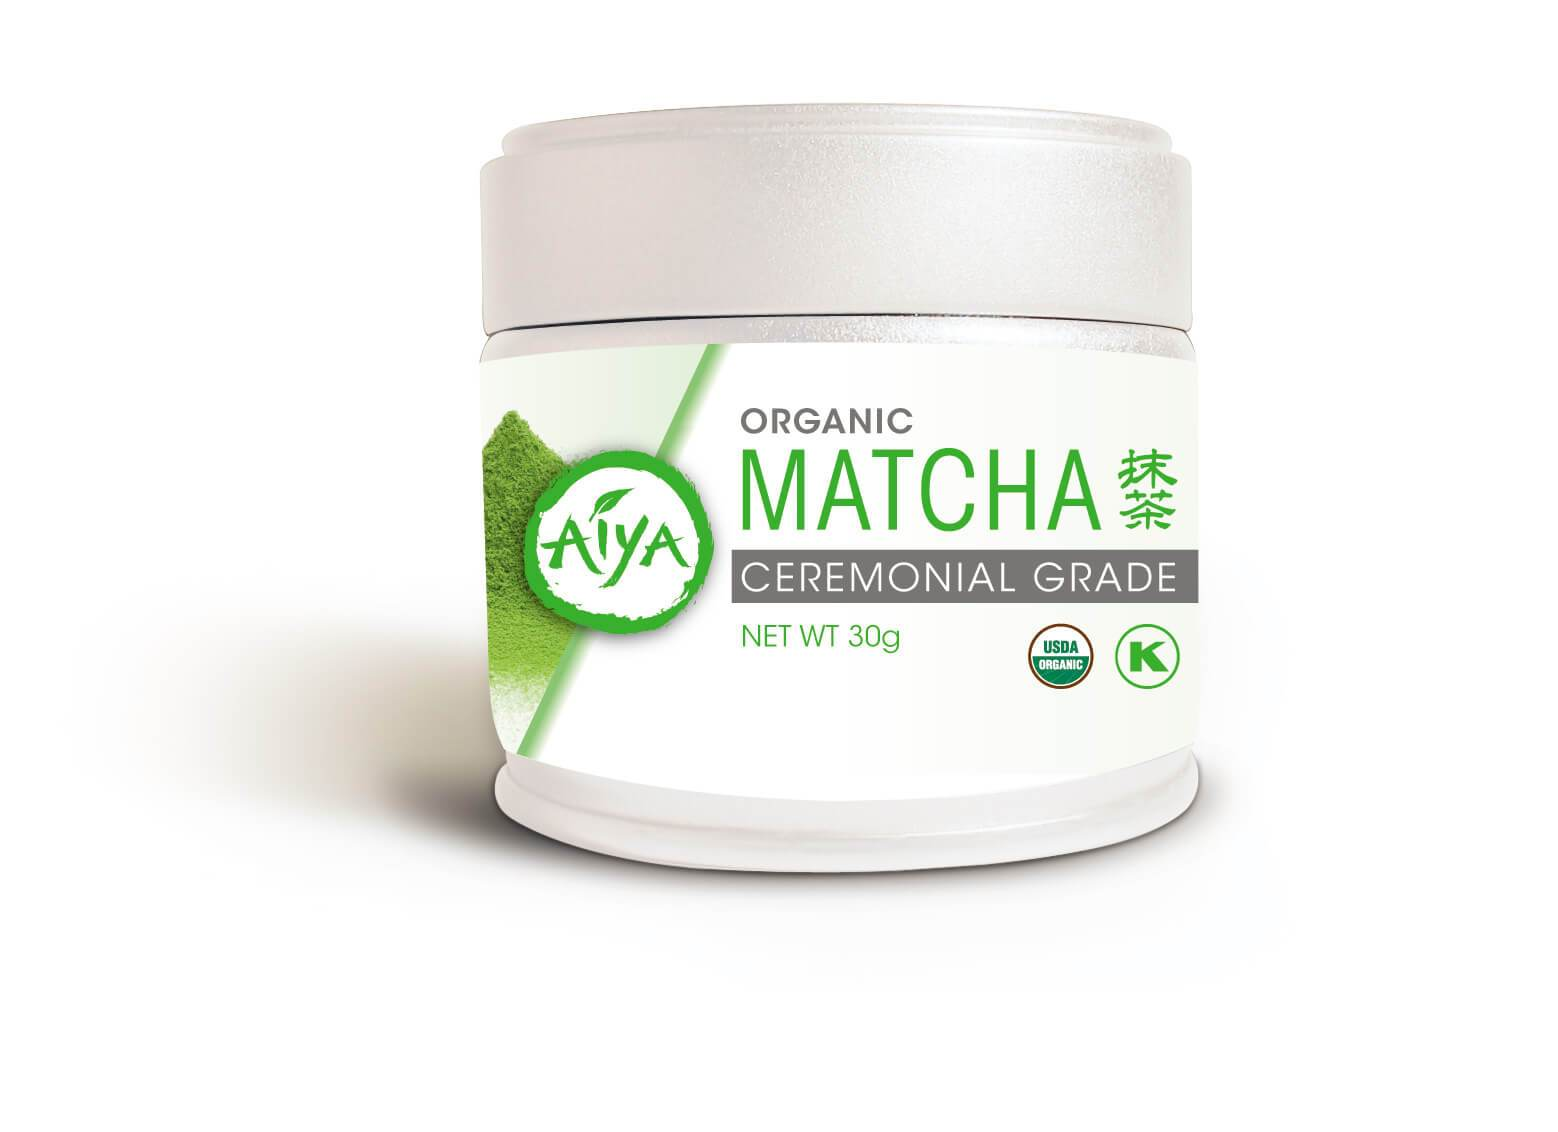 Food & Drink - Aiya Company Limited - Ceremonial Matcha, 30g